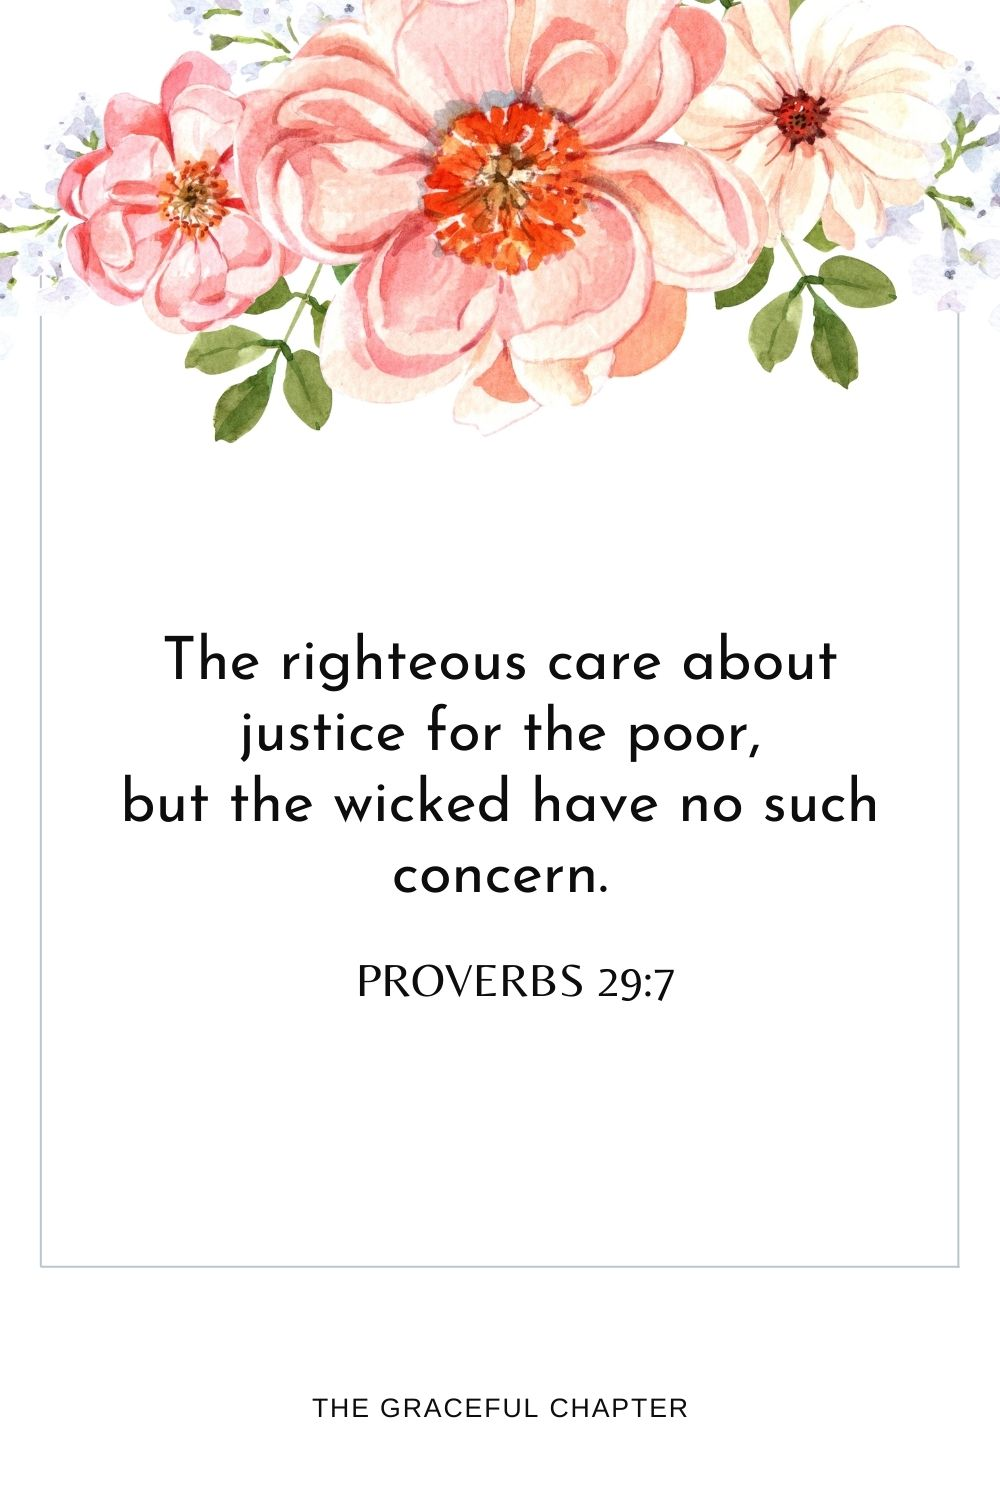 The righteous care about justice for the poor, but the wicked have no such concern. Proverbs 29:7